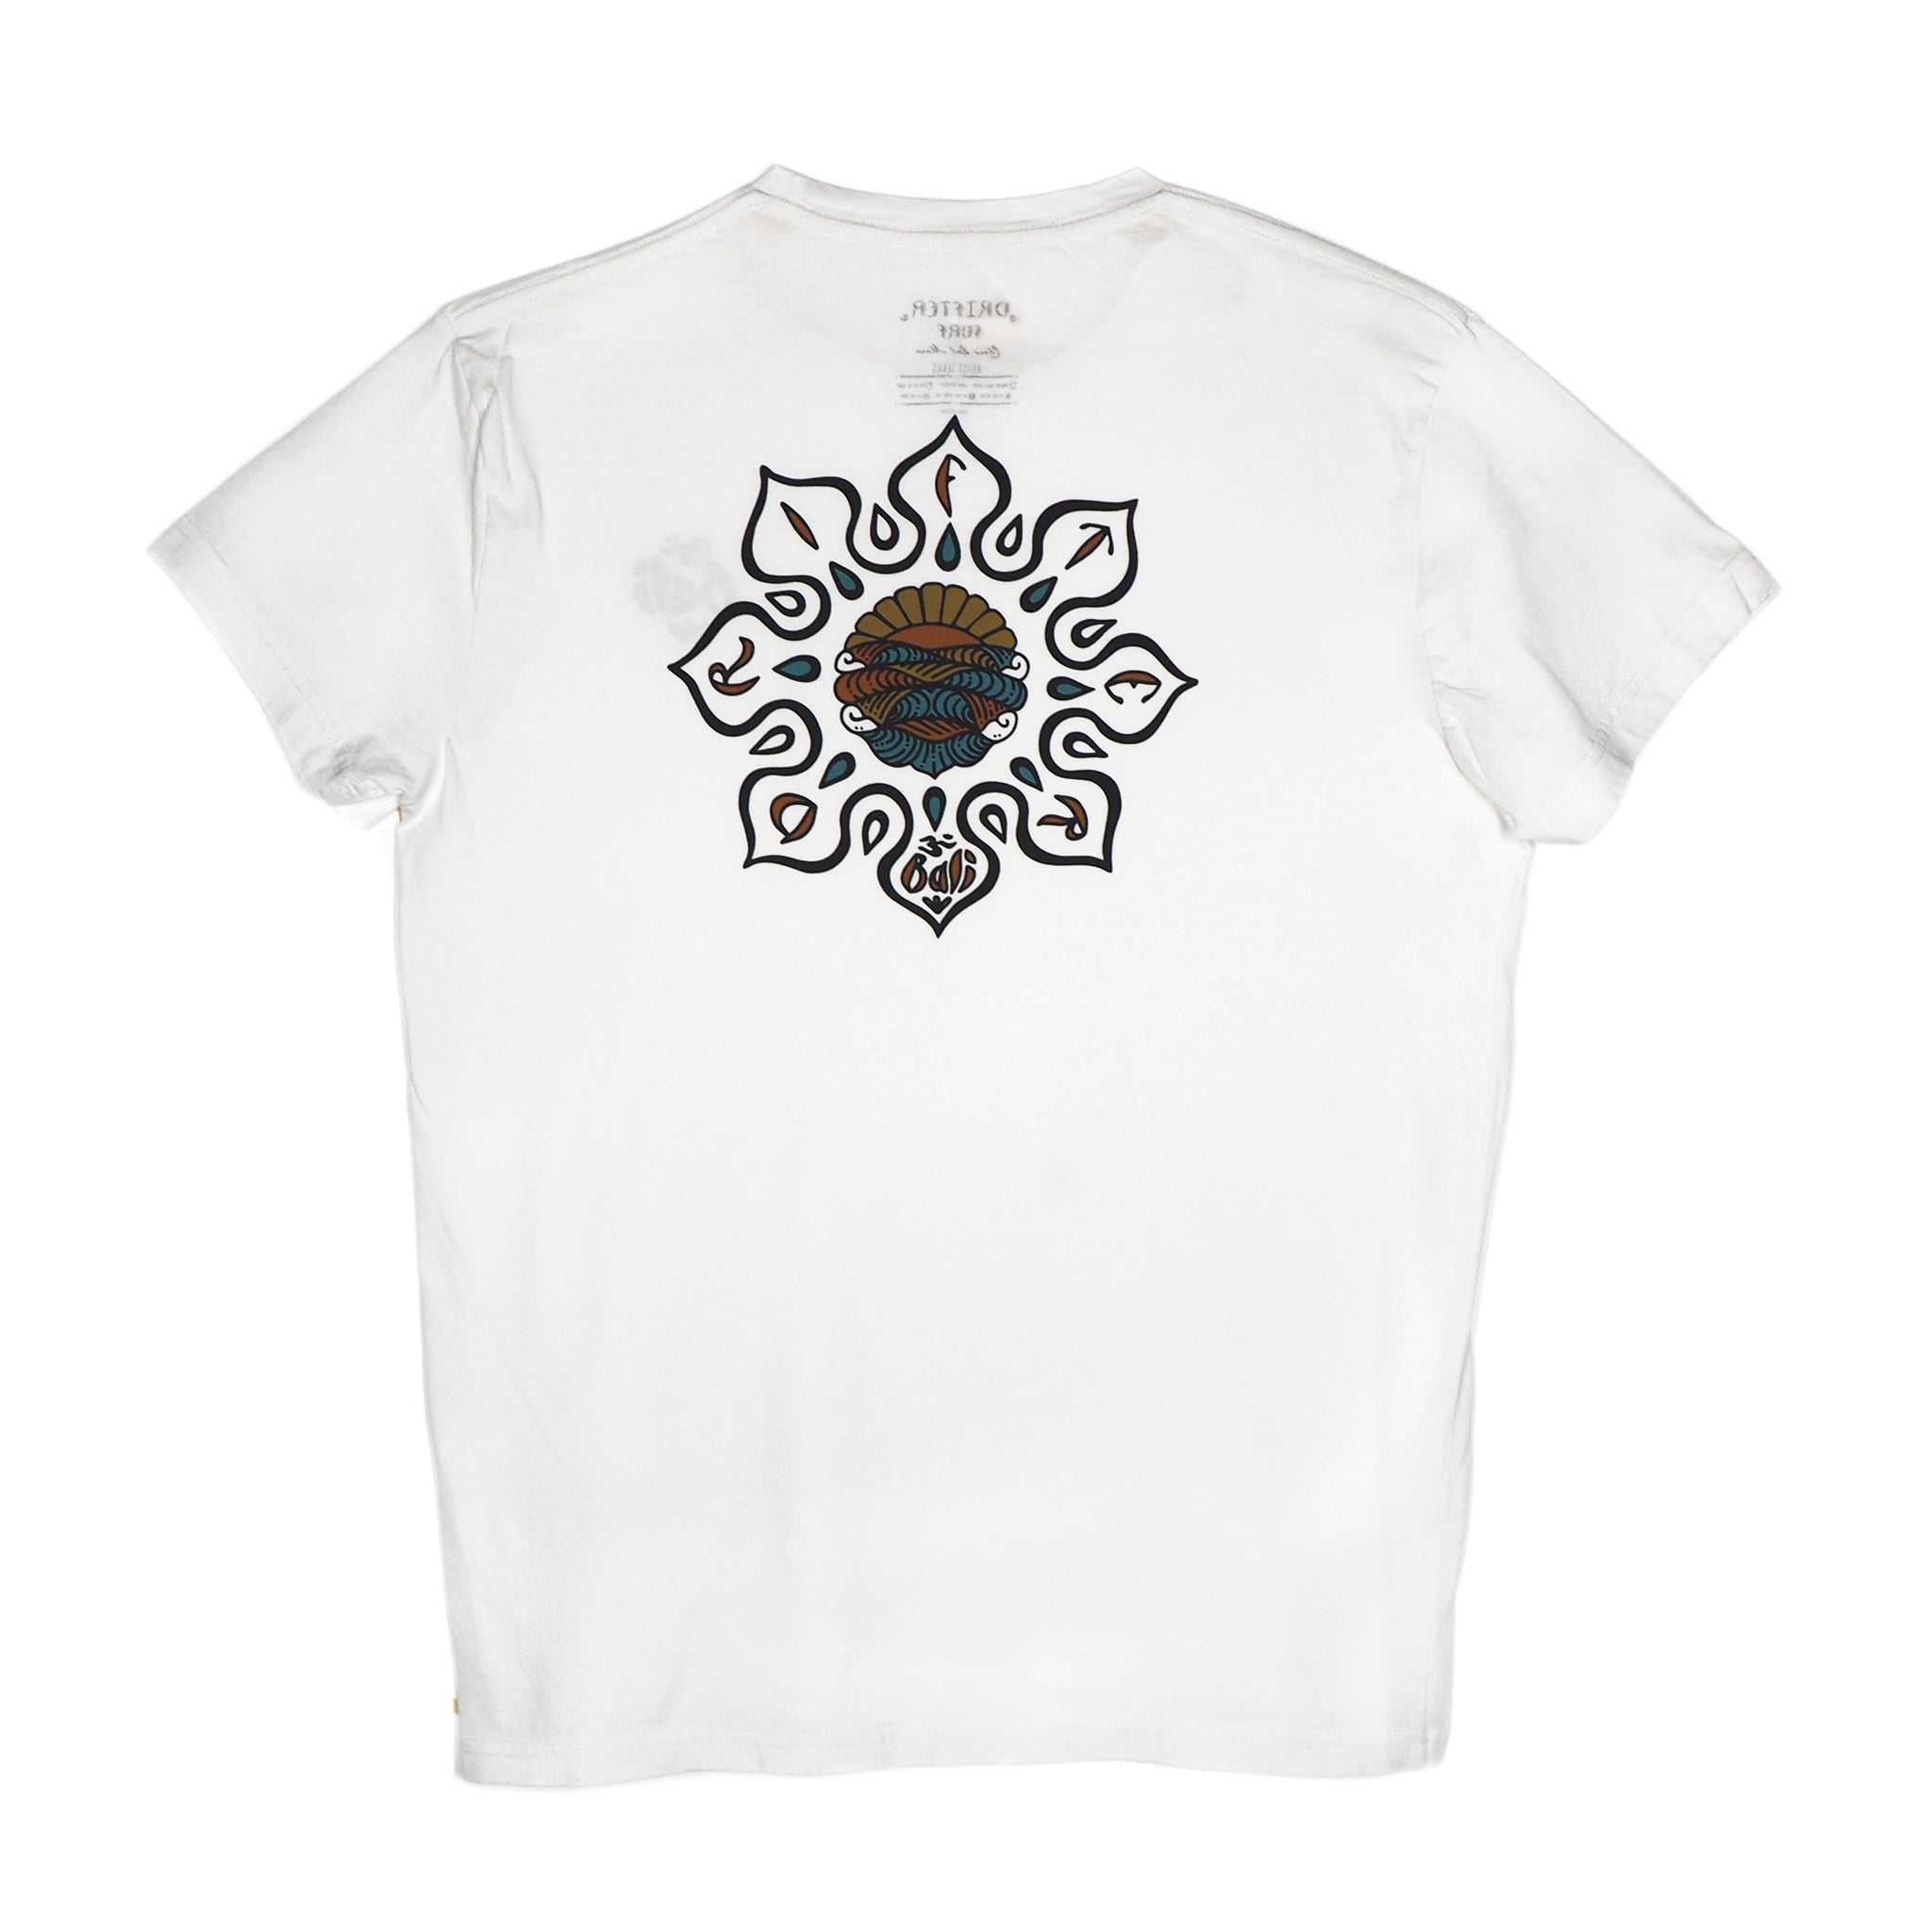 MEN'S LOTUS LAND T-SHIRT